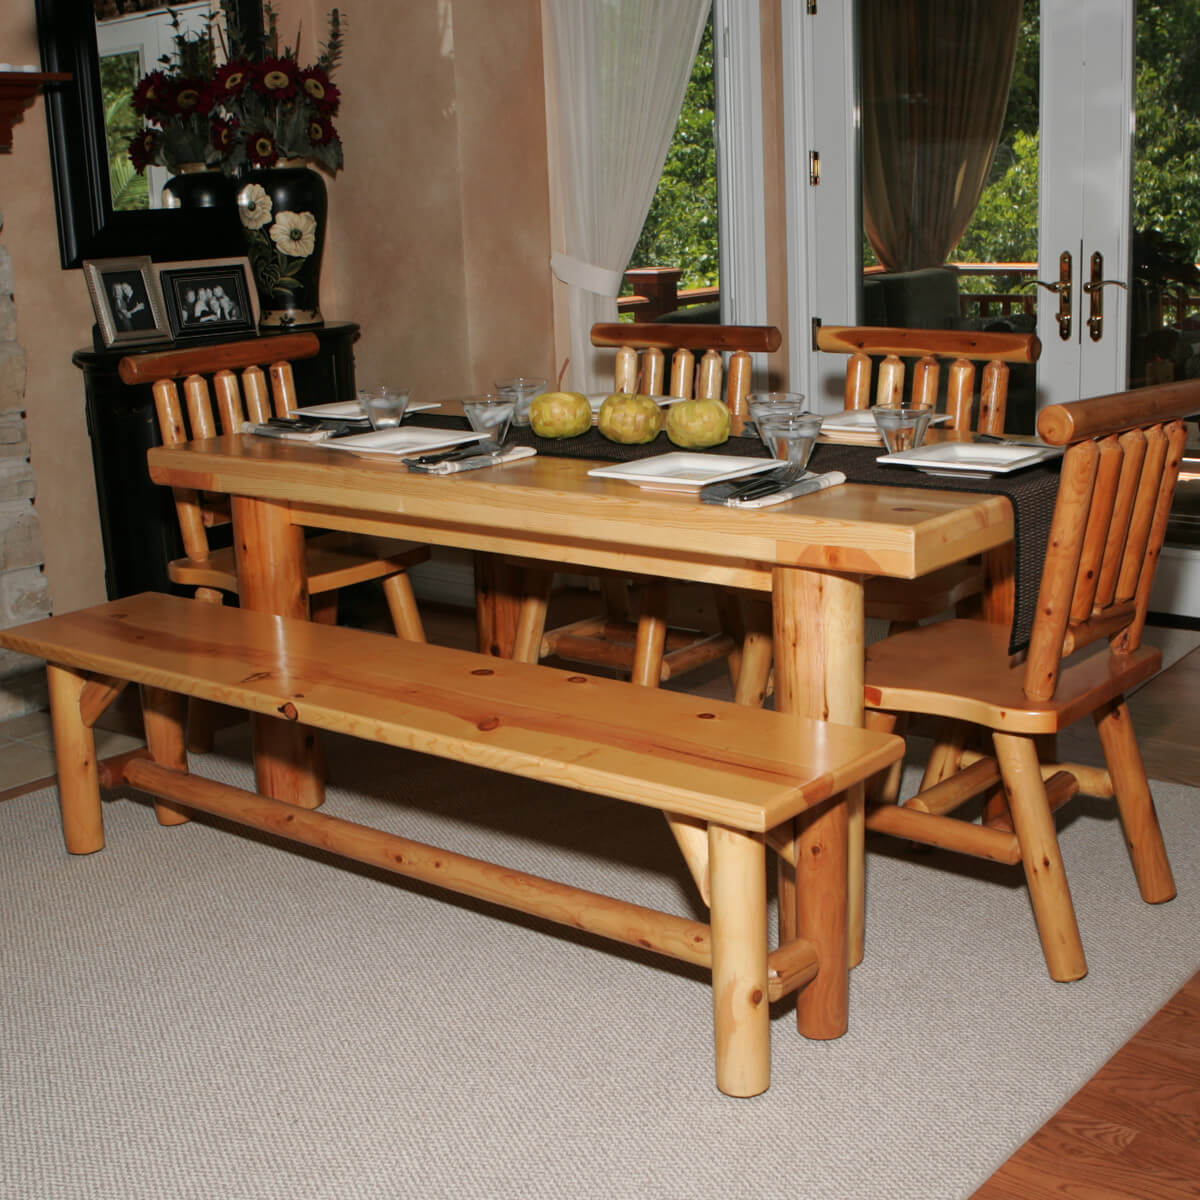 Hereu0027s a dining table set with bench perfect for the log cabin or home. Seating & 26 Dining Room Sets (Big and Small) with Bench Seating (2018)